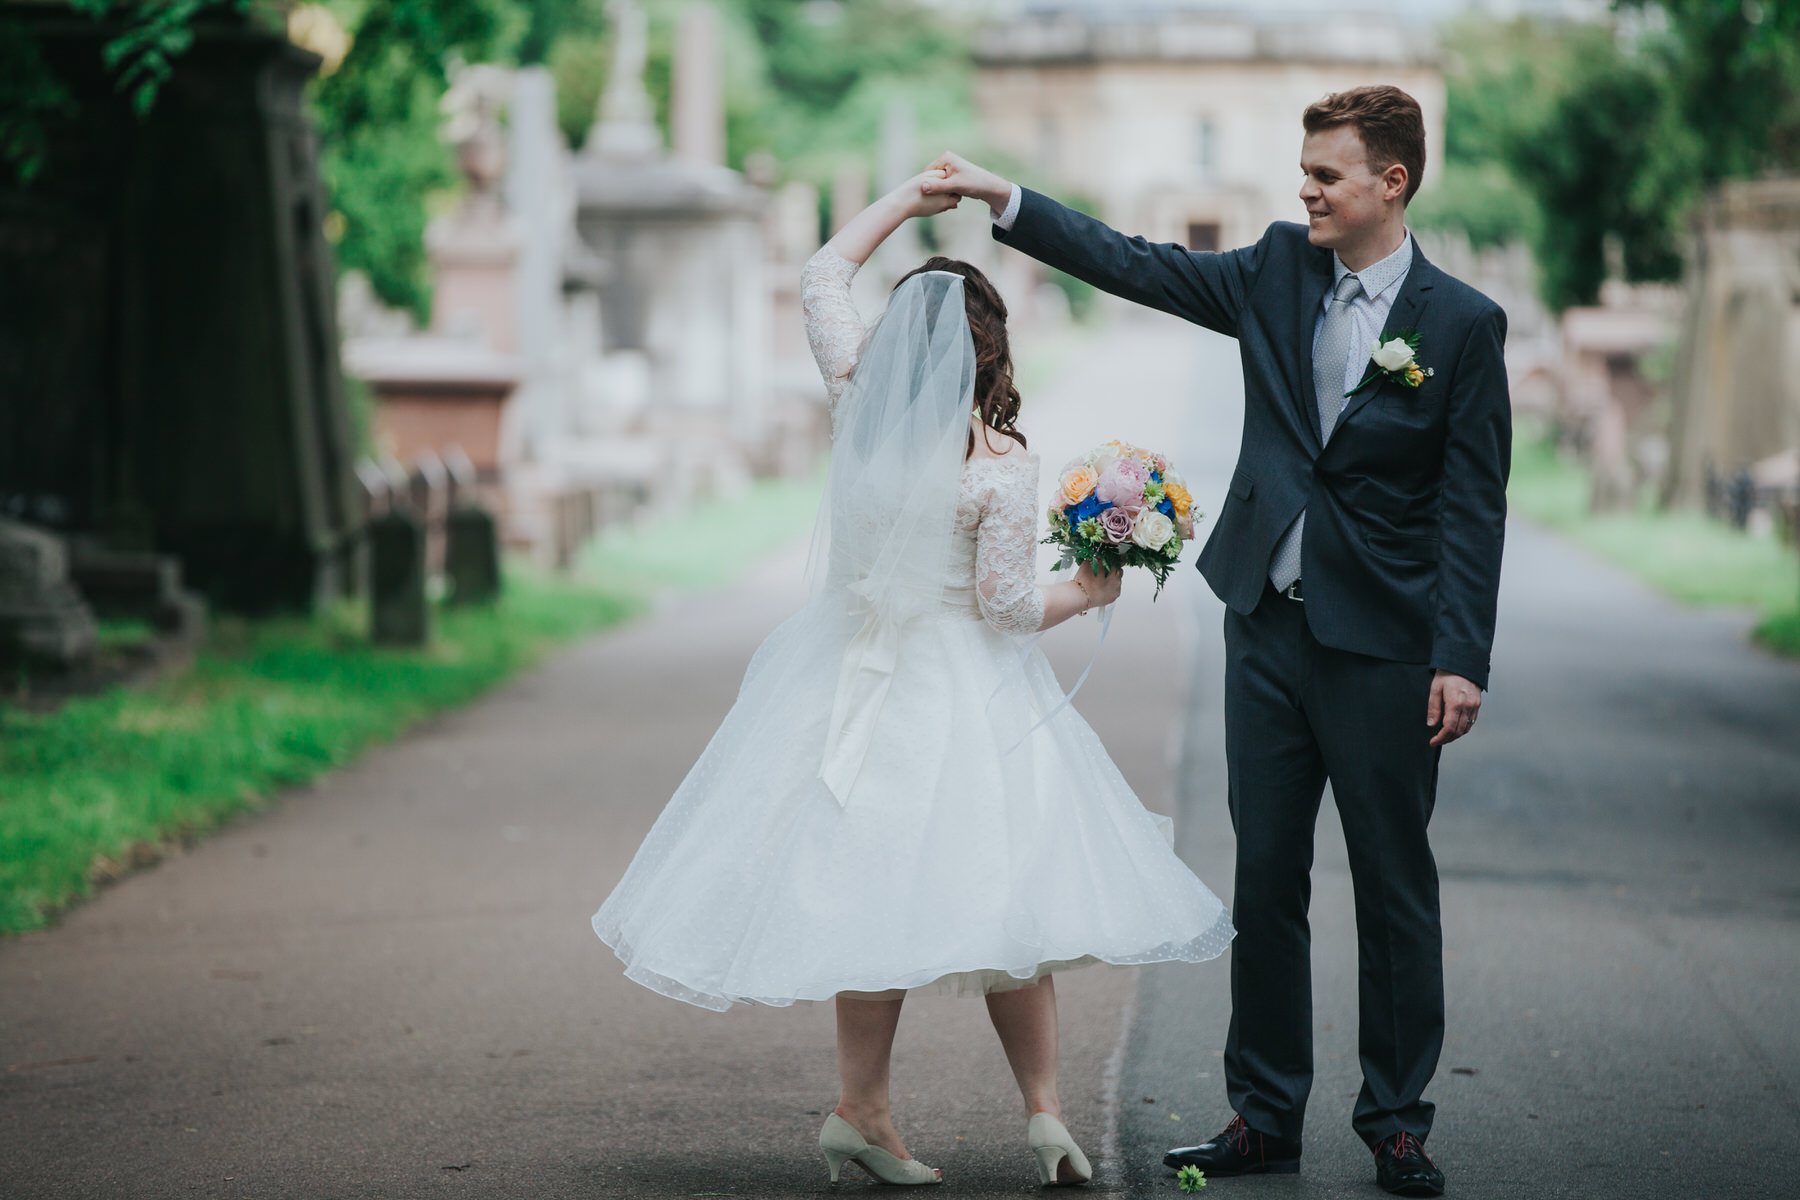 171 dancing groom bride wedding portraits Brompton Cemetery.jpg